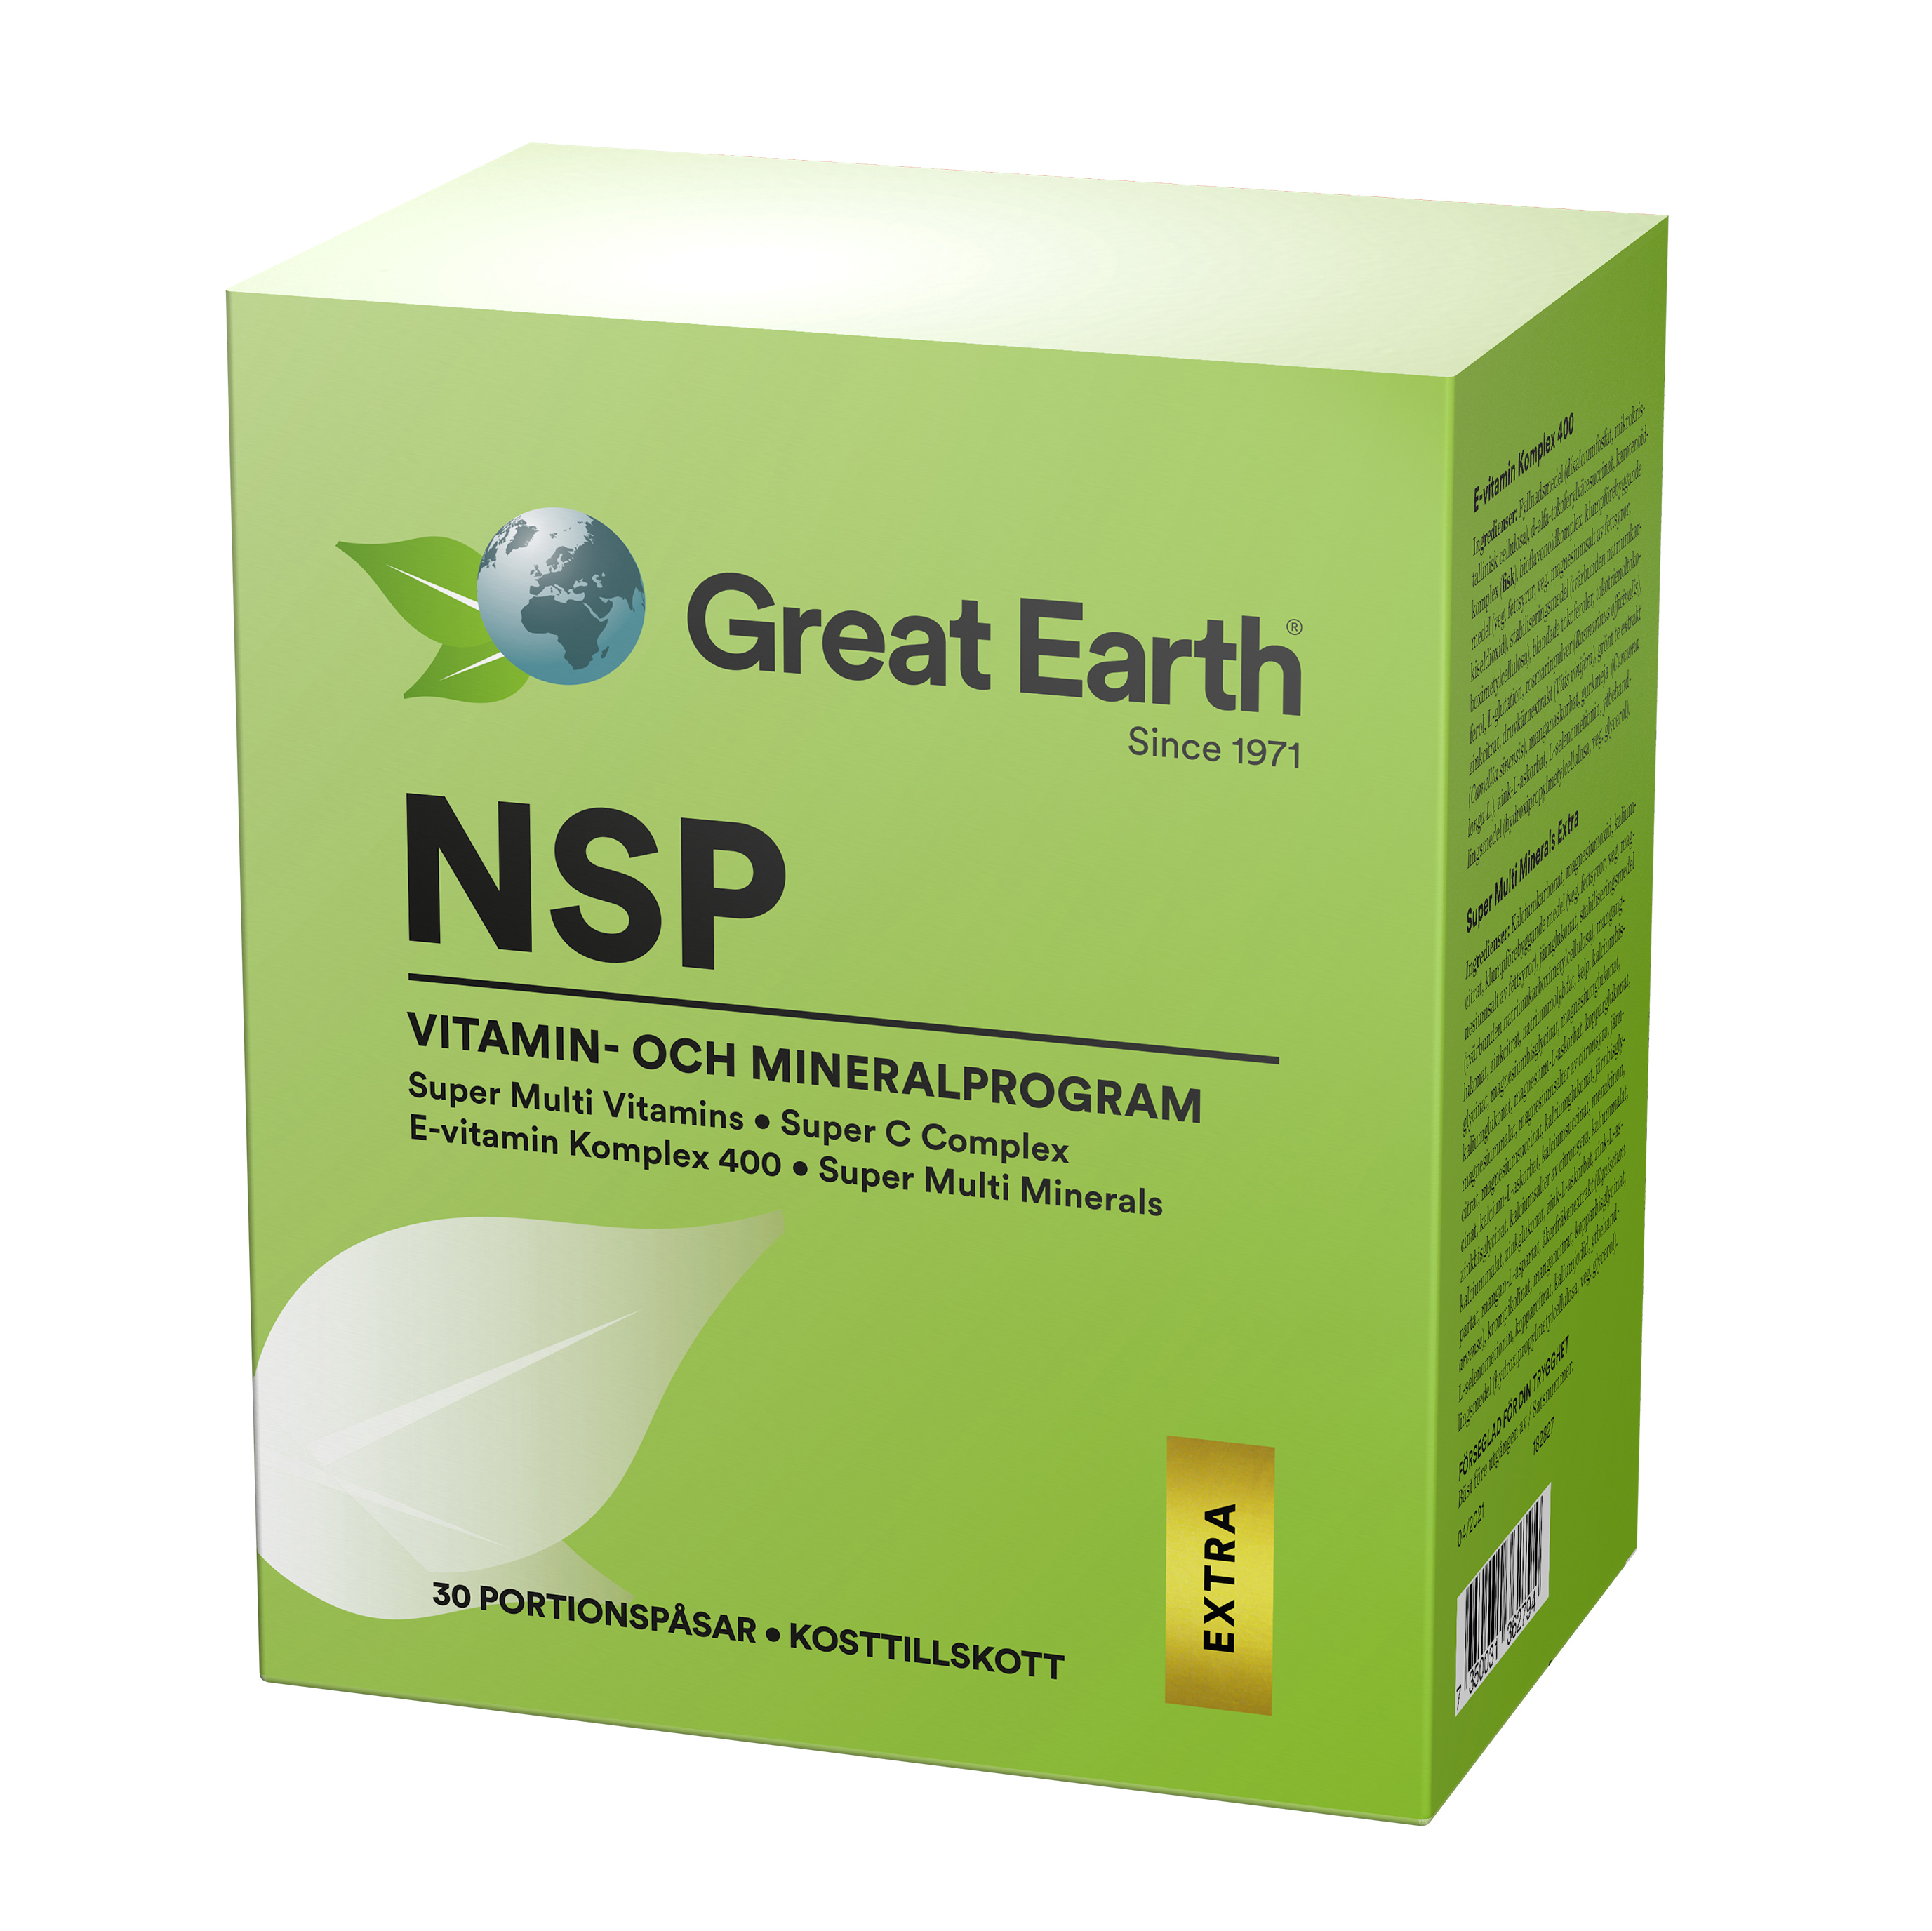 great earth nsp